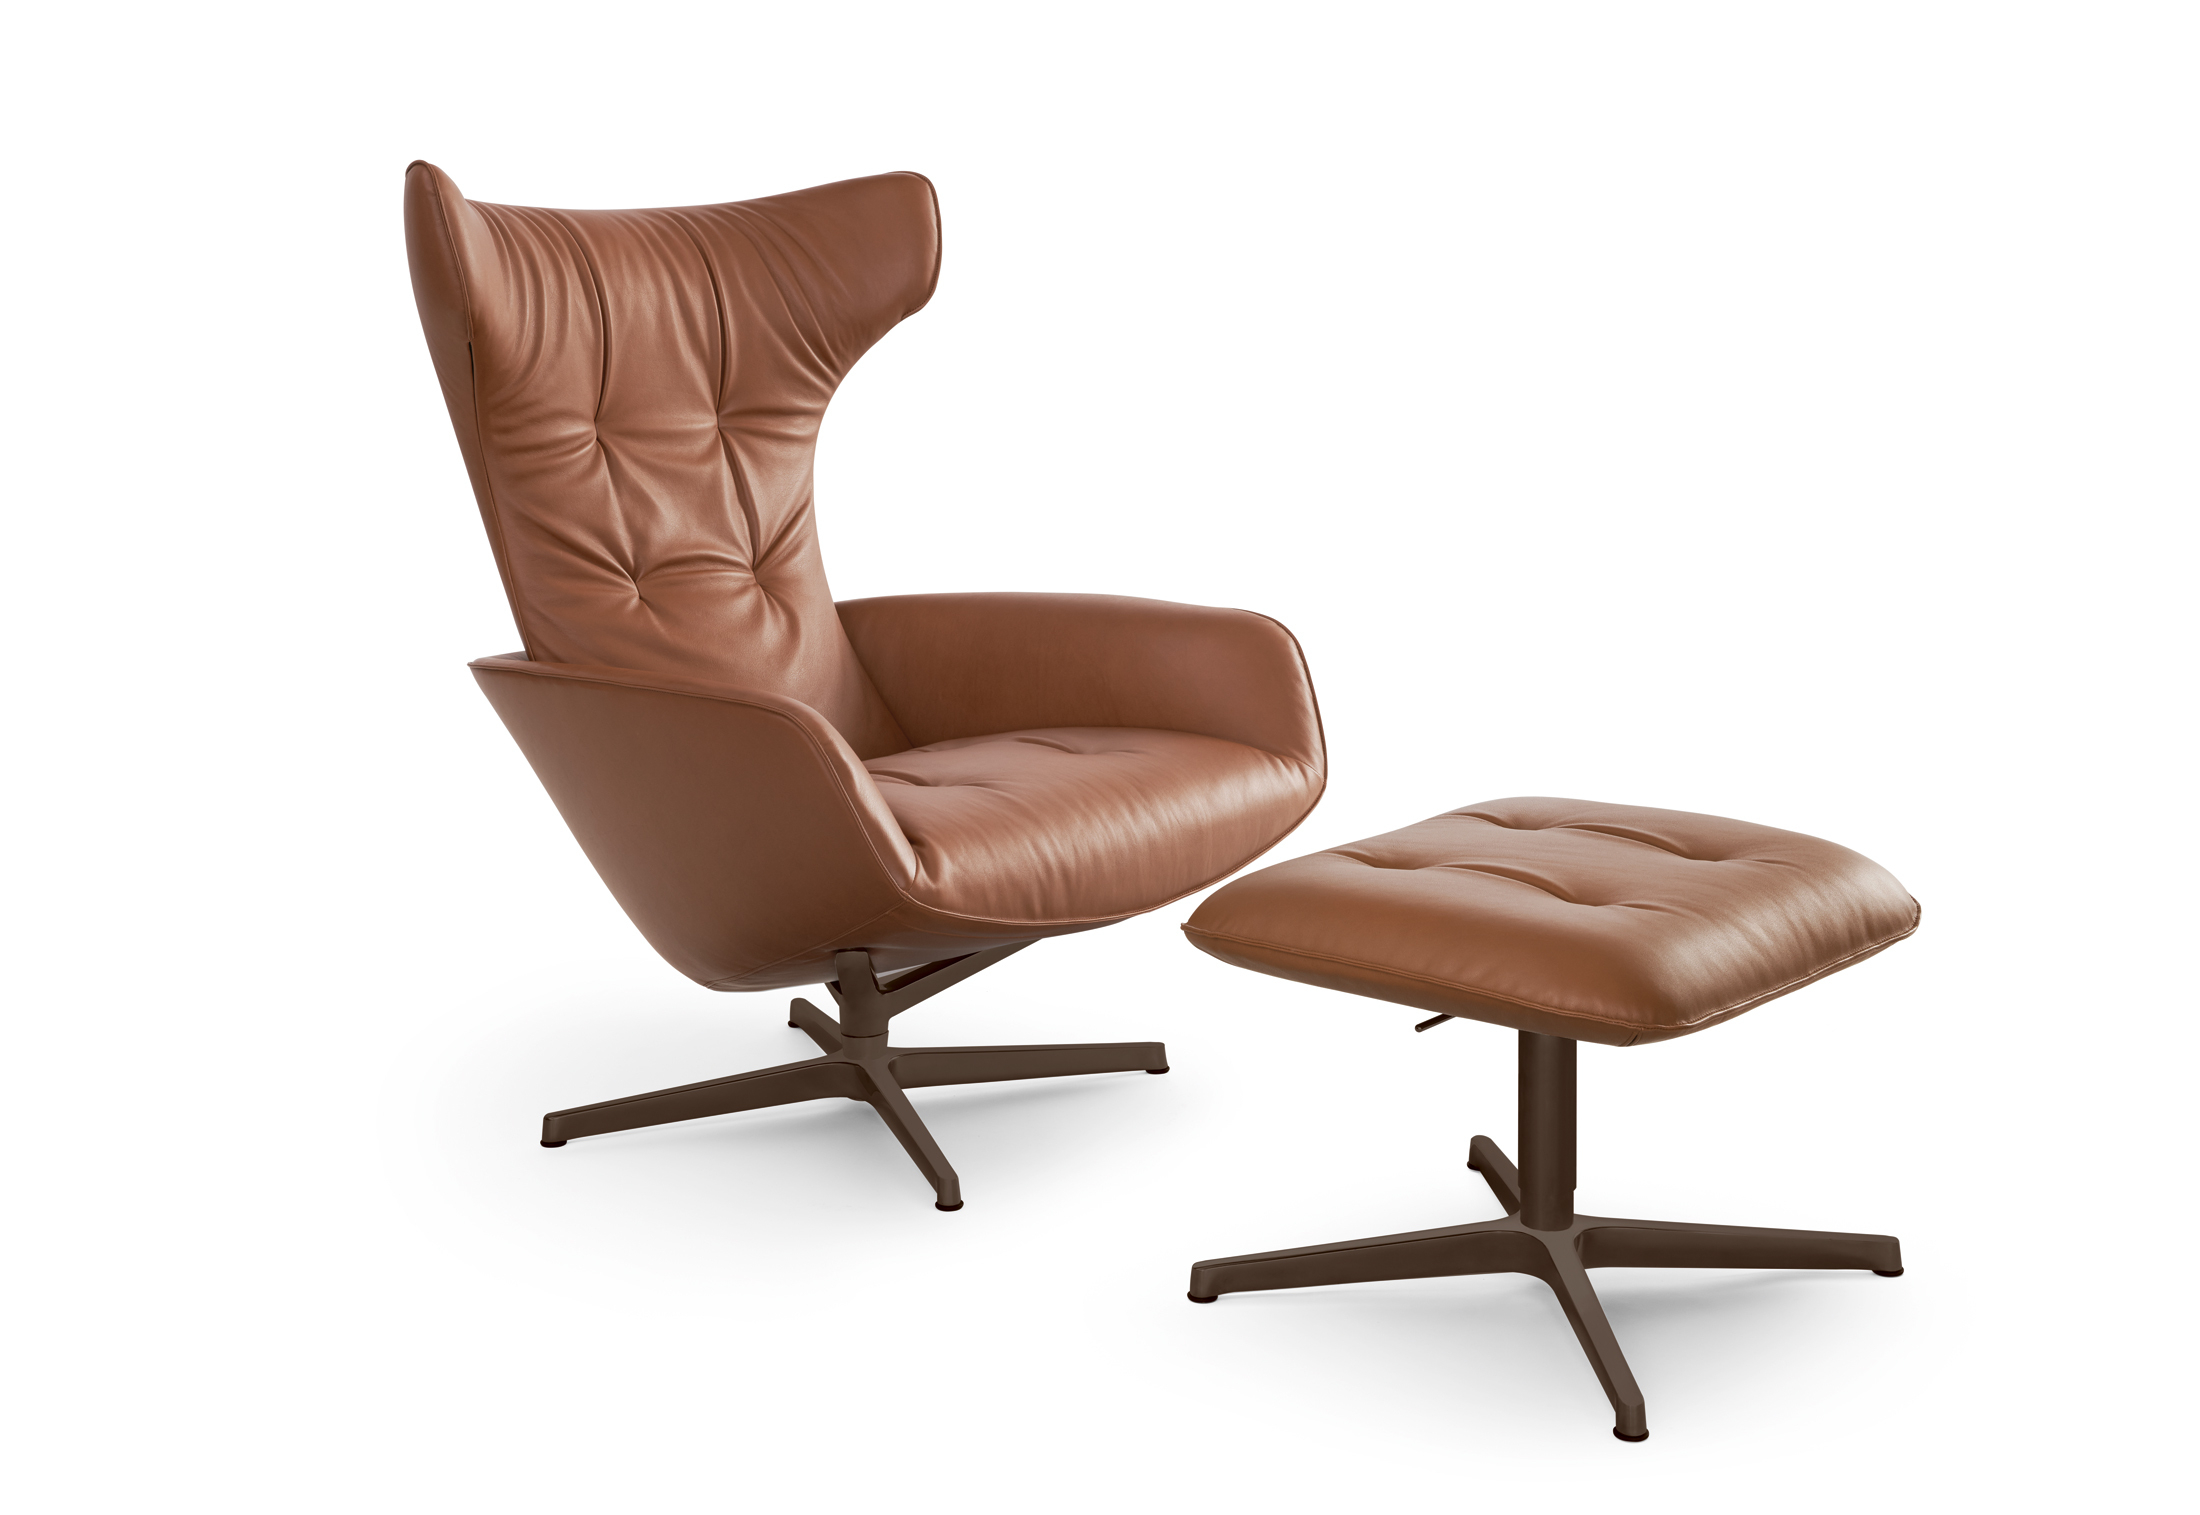 Onsa Chairwalter Knoll | Stylepark Intended For Walter Leather Sofa Chairs (View 19 of 25)